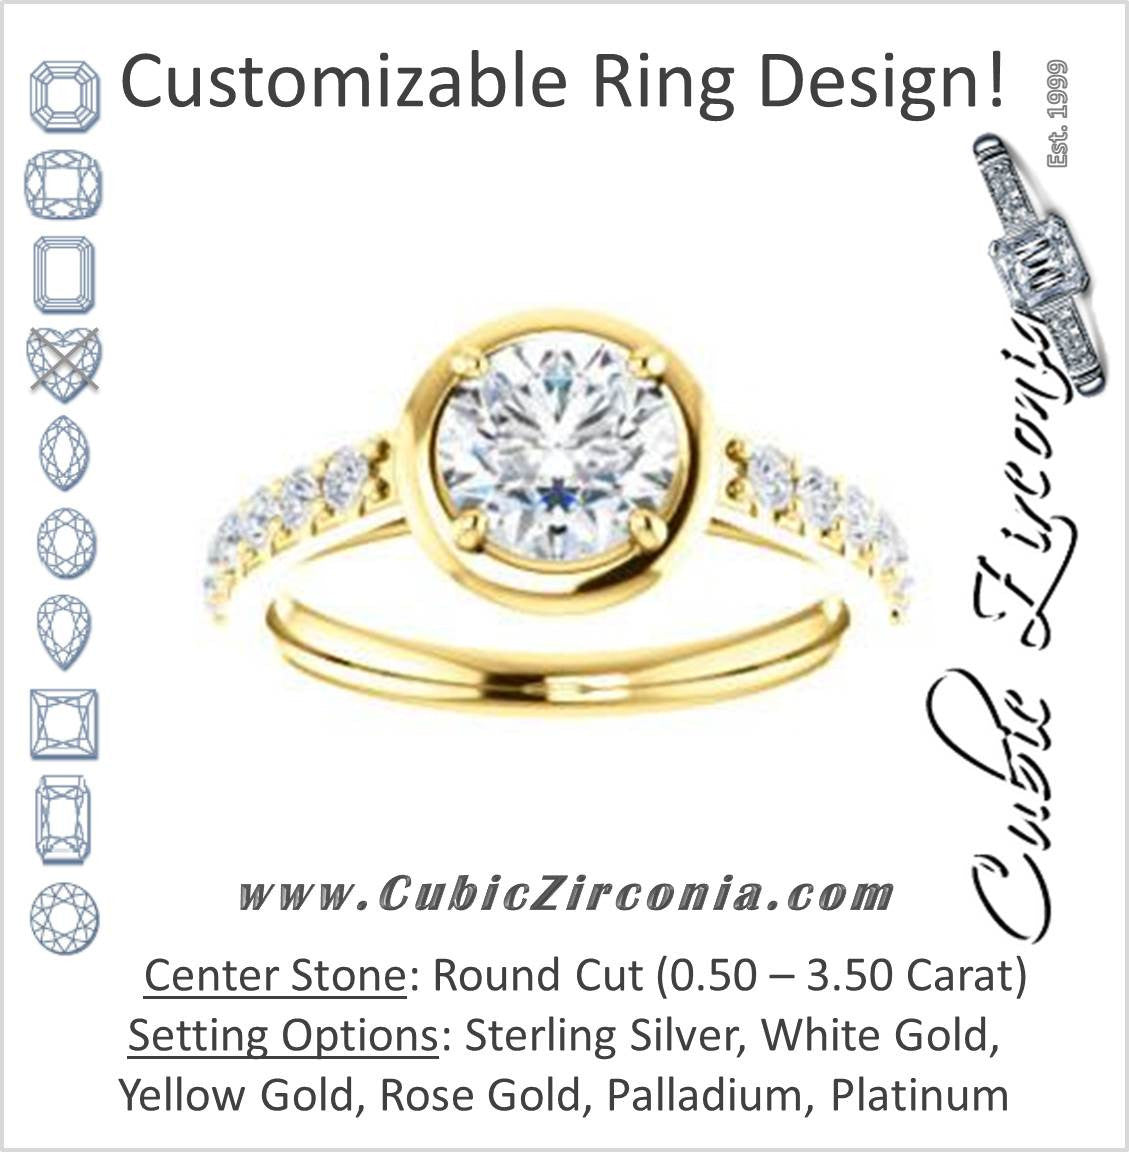 1a3fc8955f35c Cubic Zirconia Engagement Ring- The Lynette (Customizable Cathedral-style  Bezel-set Round Cut 13-stone Design with Round Band Accents)